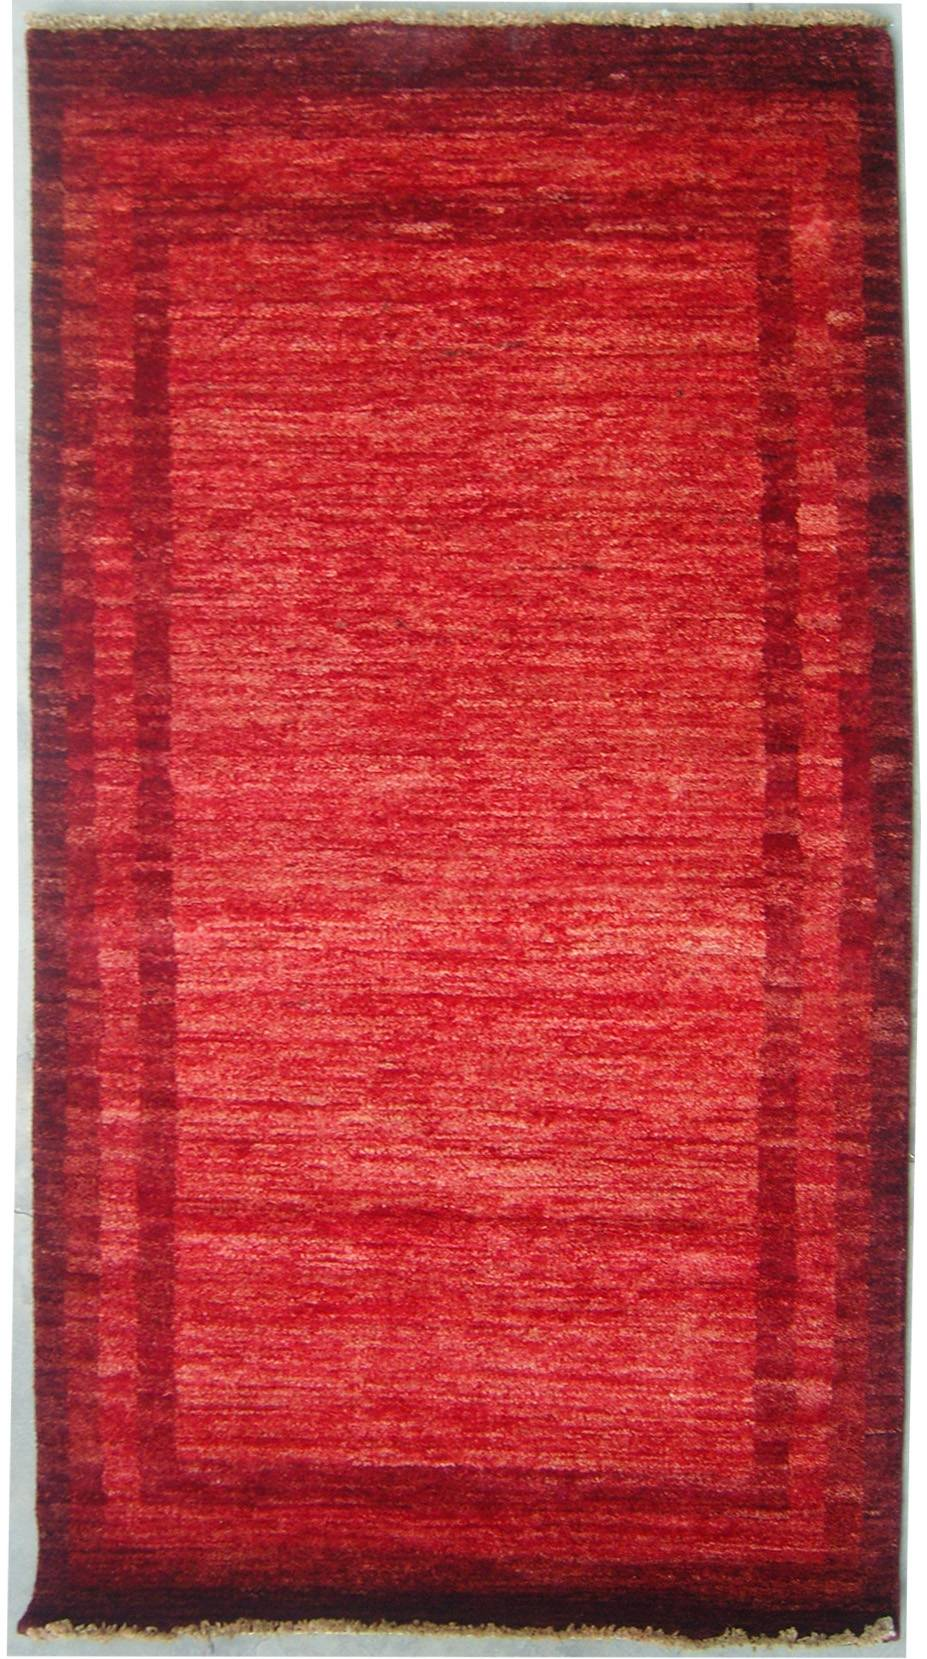 "3'0""x5'1"" Gabbeh Design made with vegetable dyes"